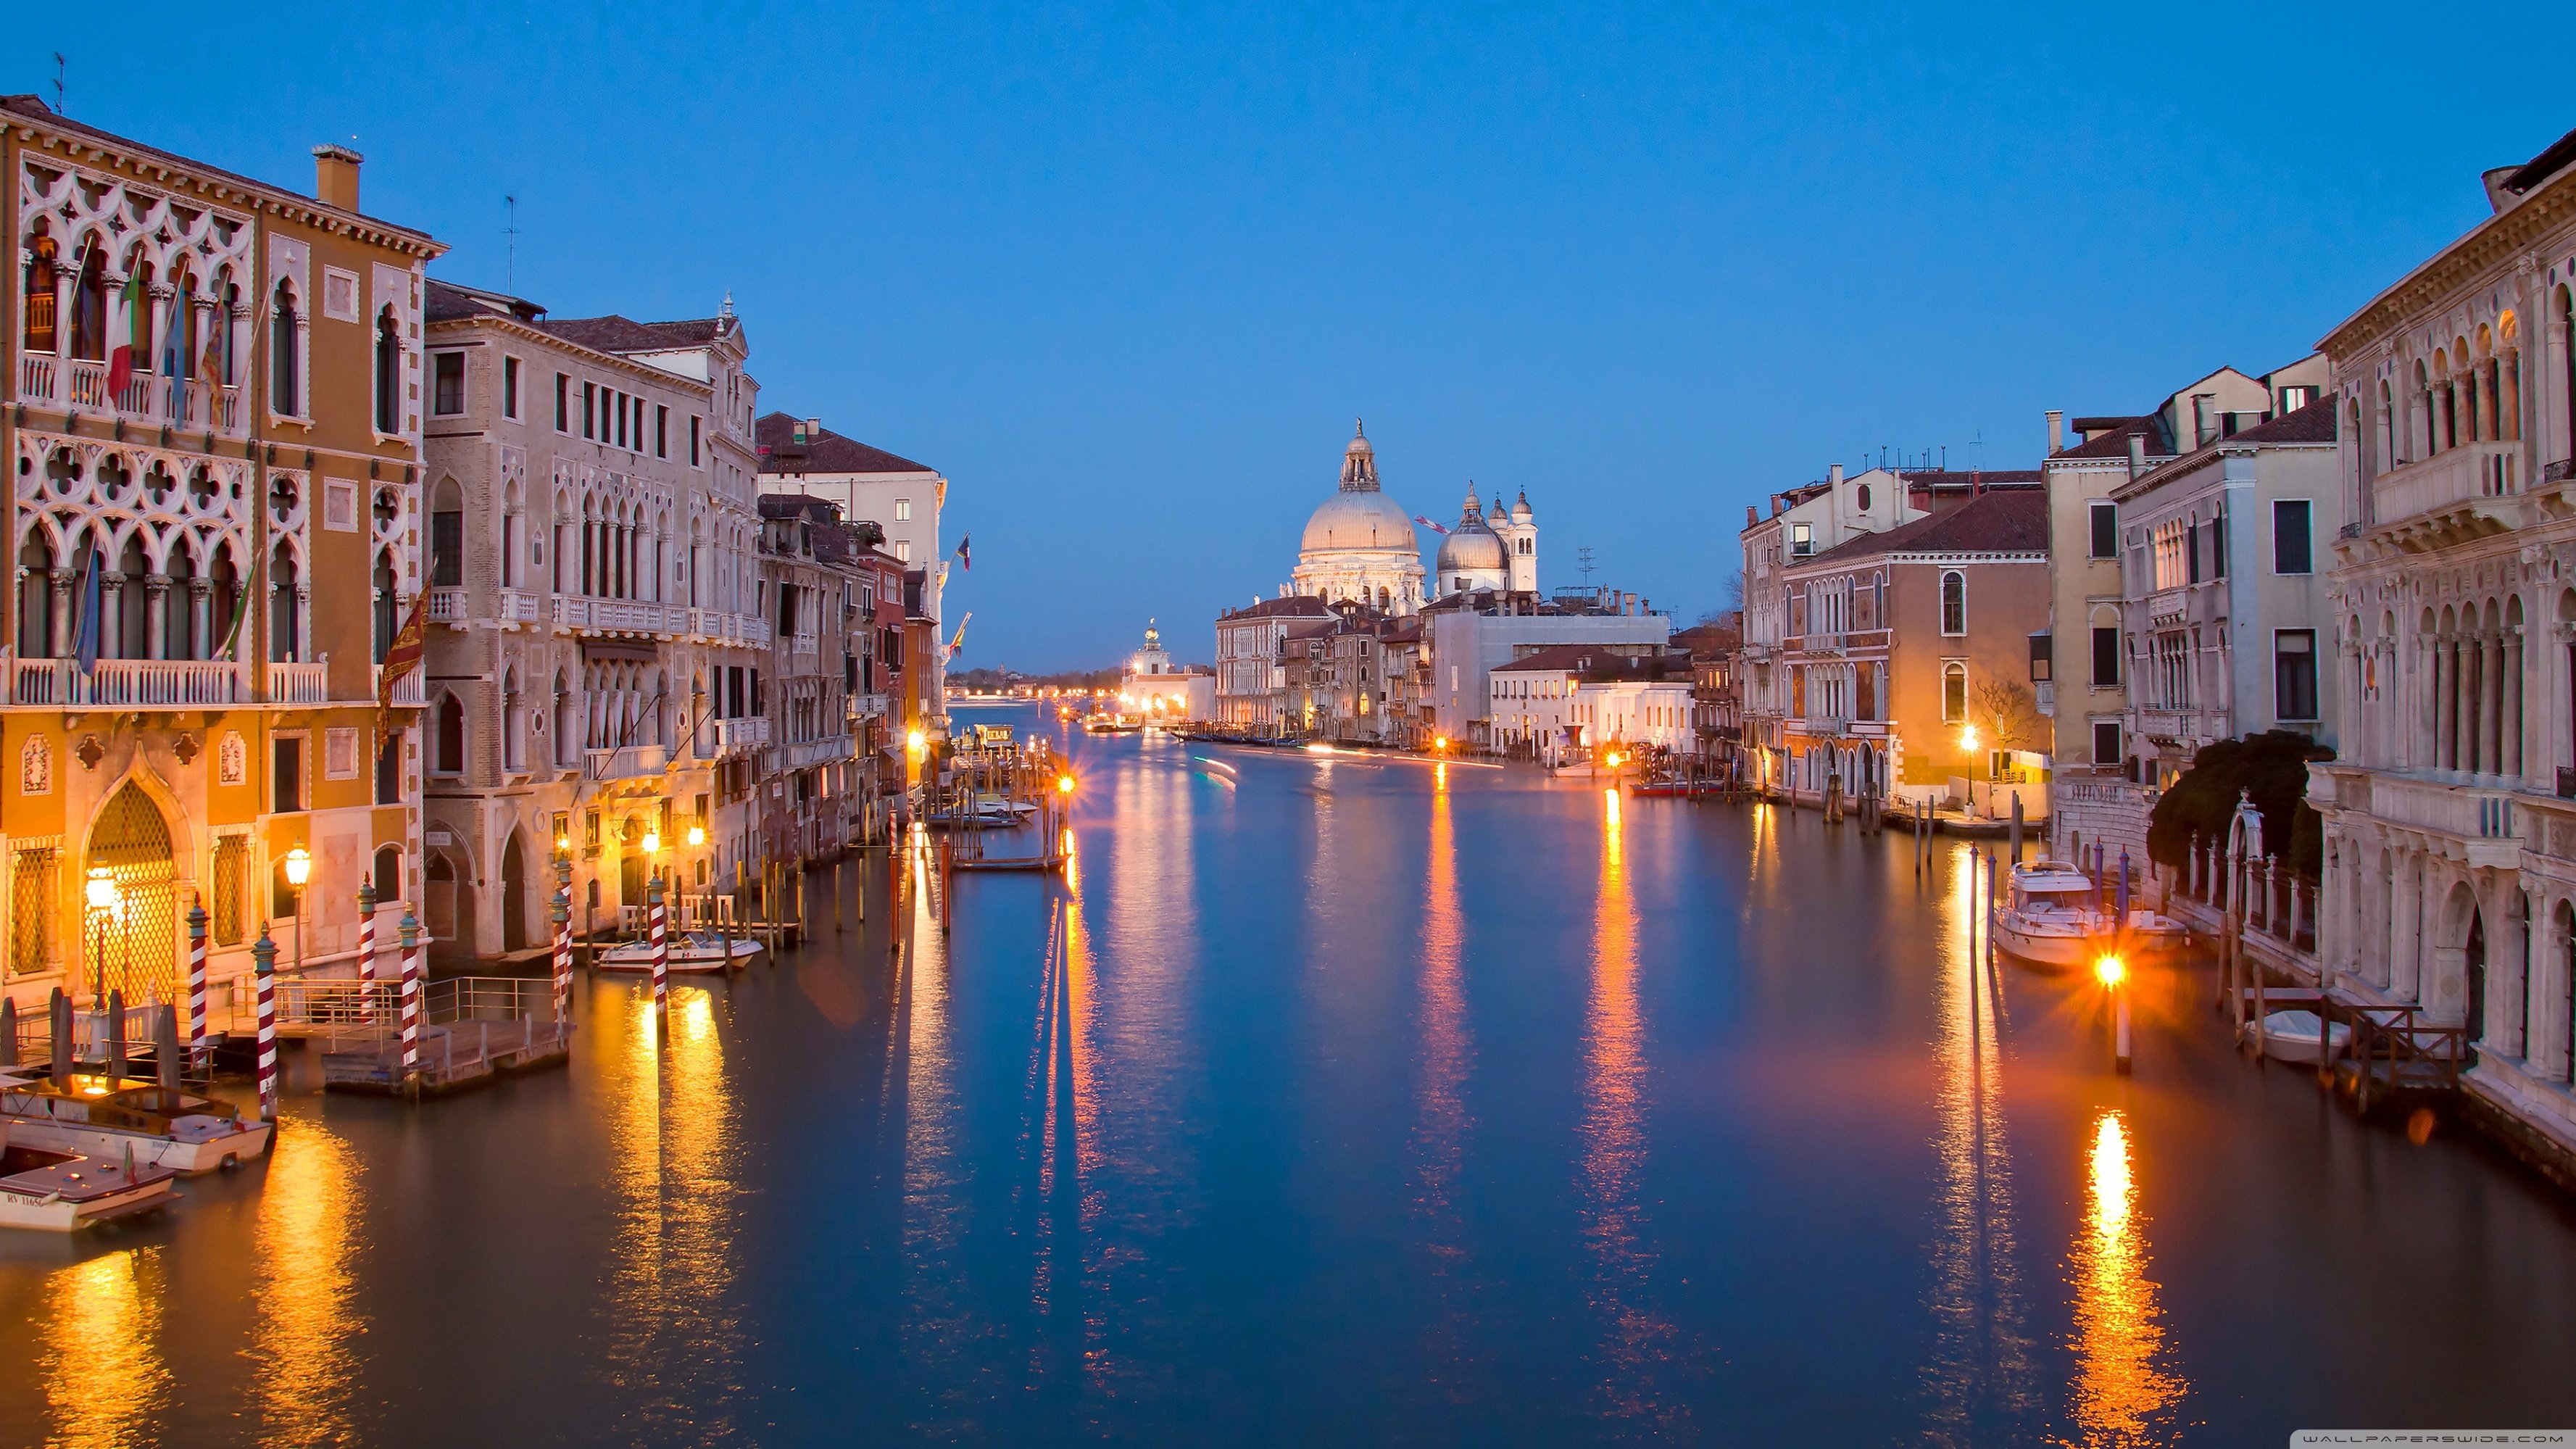 Venice At Night HD Wallpaper Background Images 3554x1999